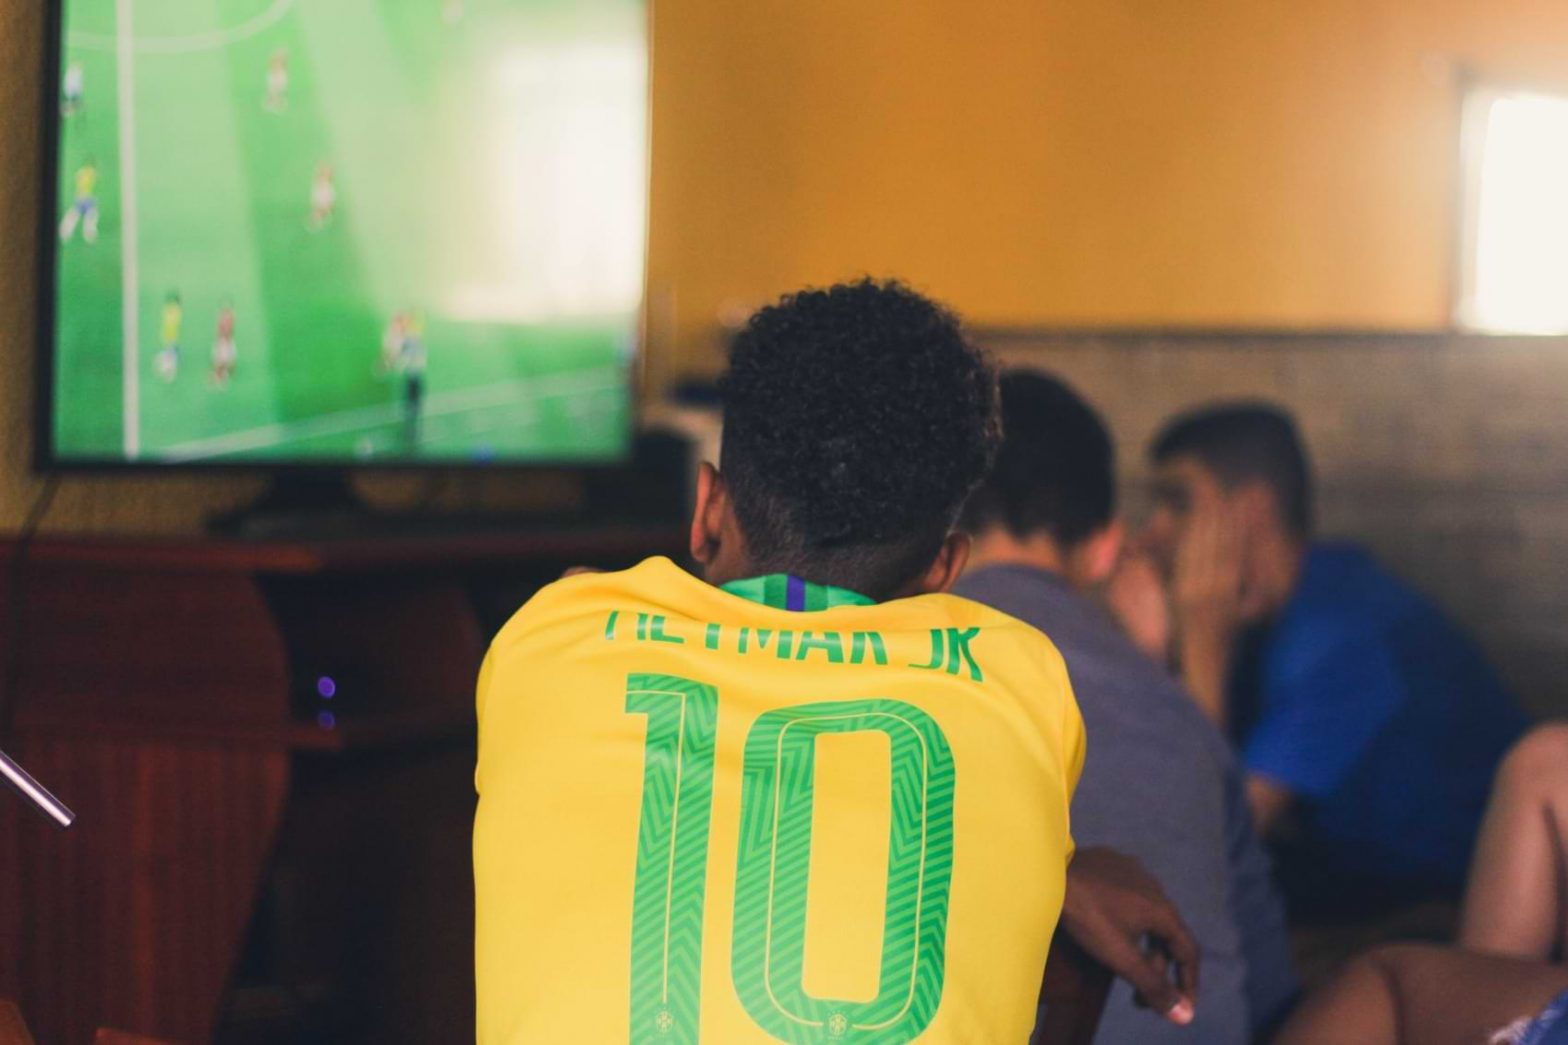 A soccer fan wearing a jersey sits in front of his TV and anxiously watches the game